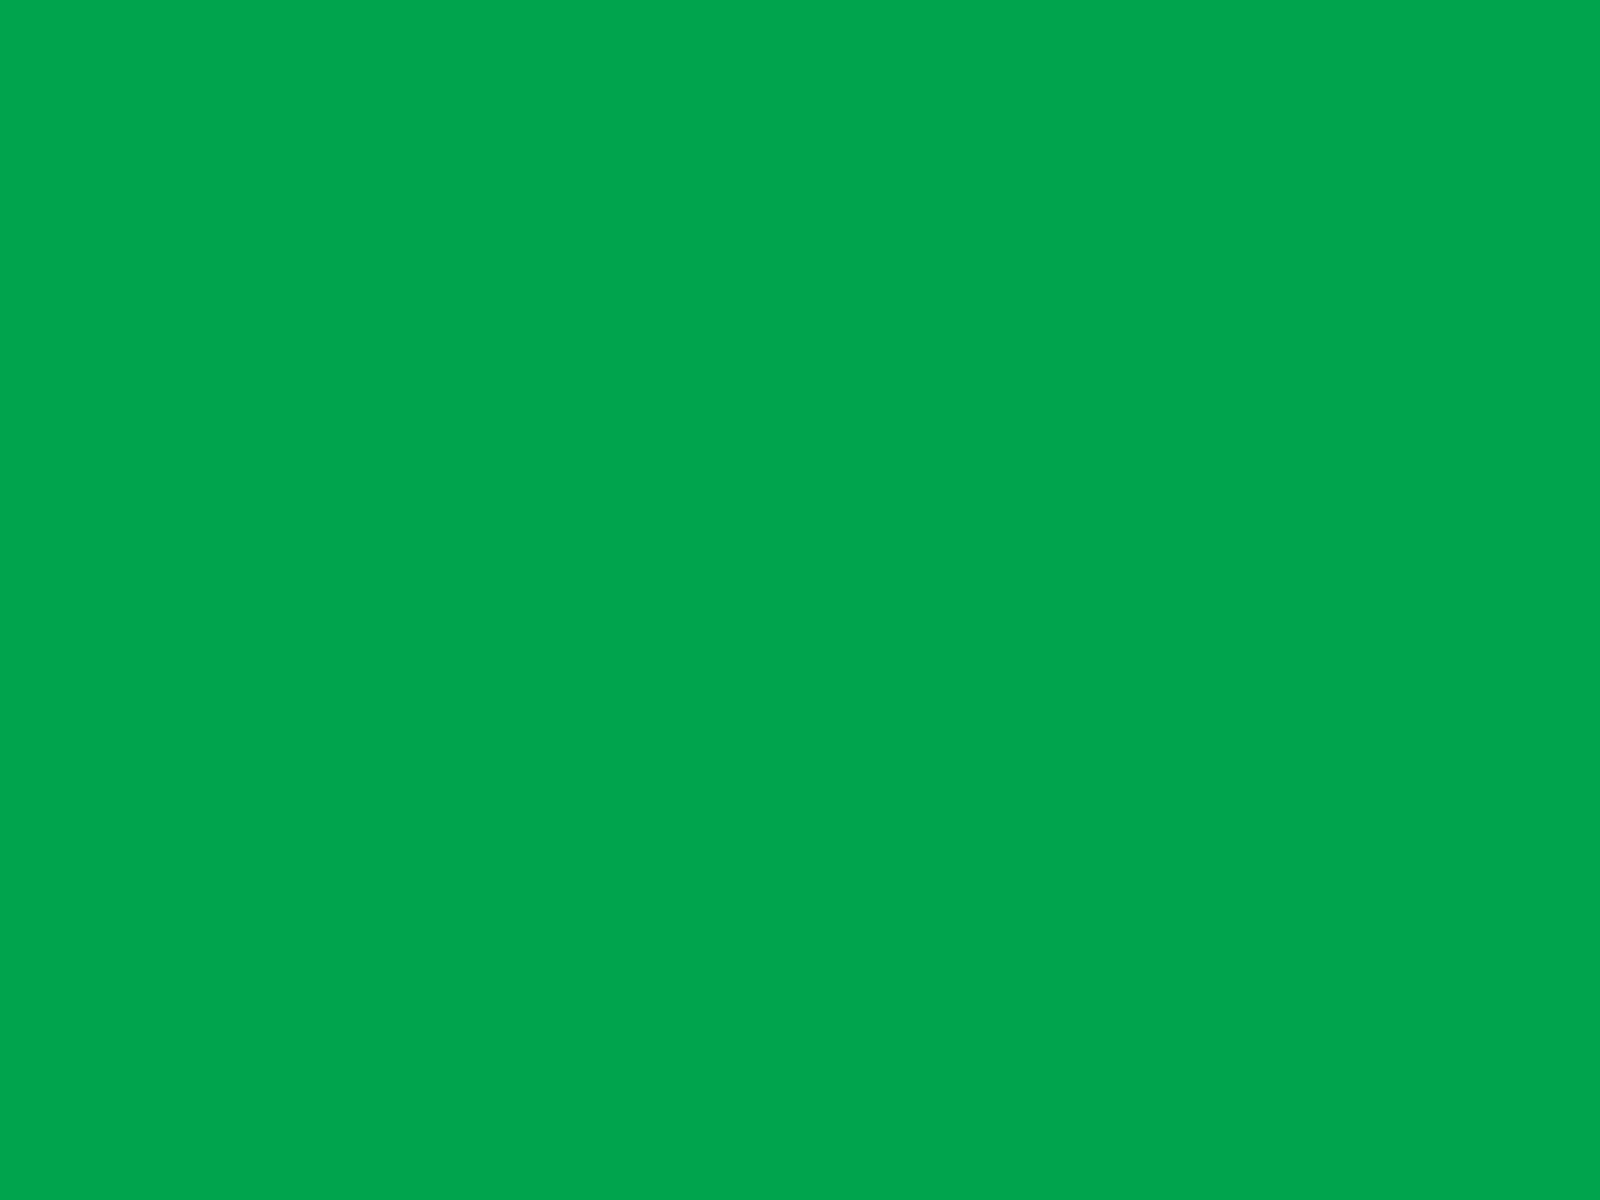 1600x1200 Green Pigment Solid Color Background